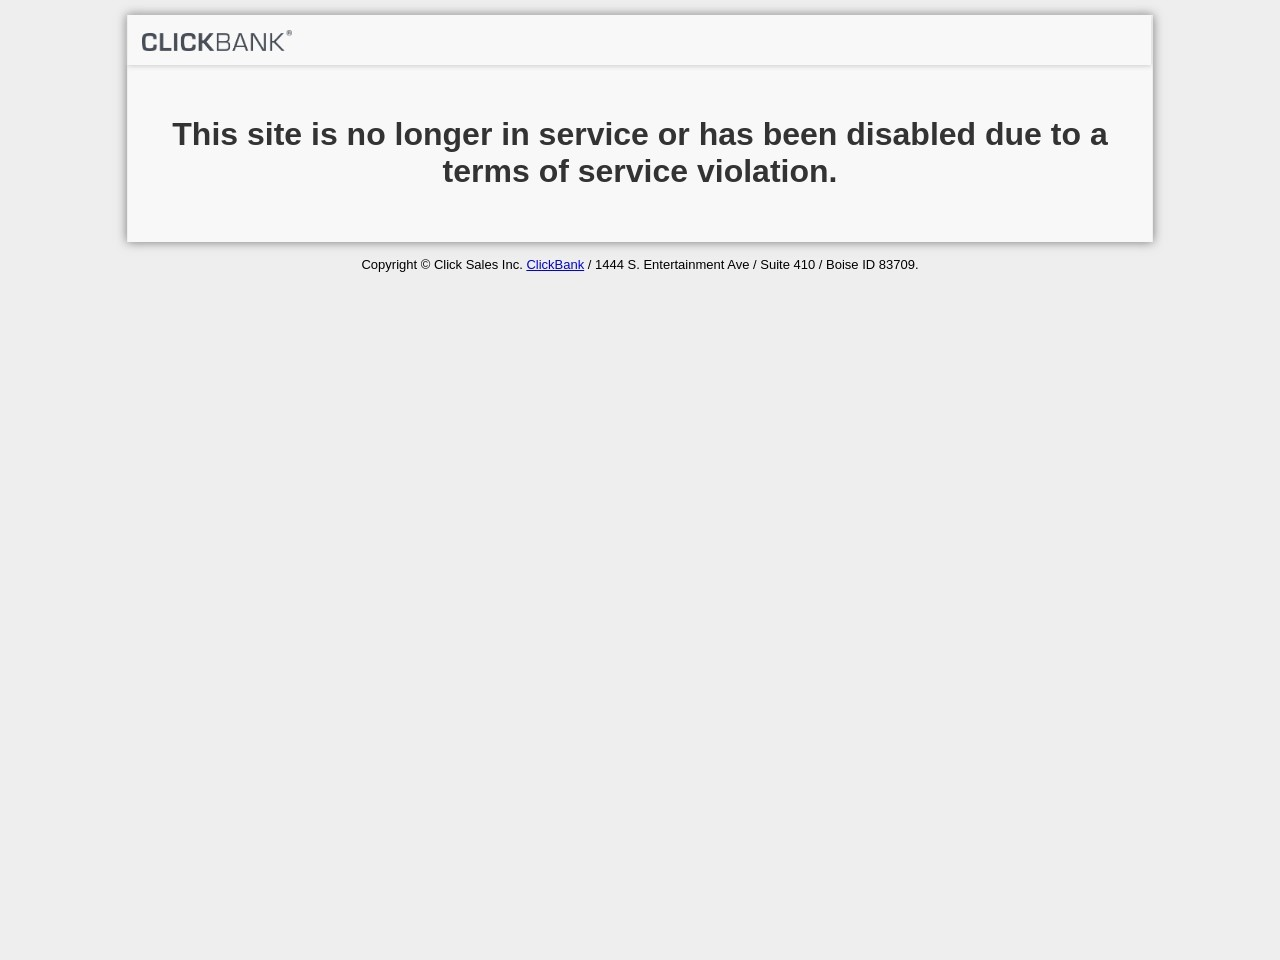 ① Efficient Planet - Hot New Guide To Efficient Living & Home Business.